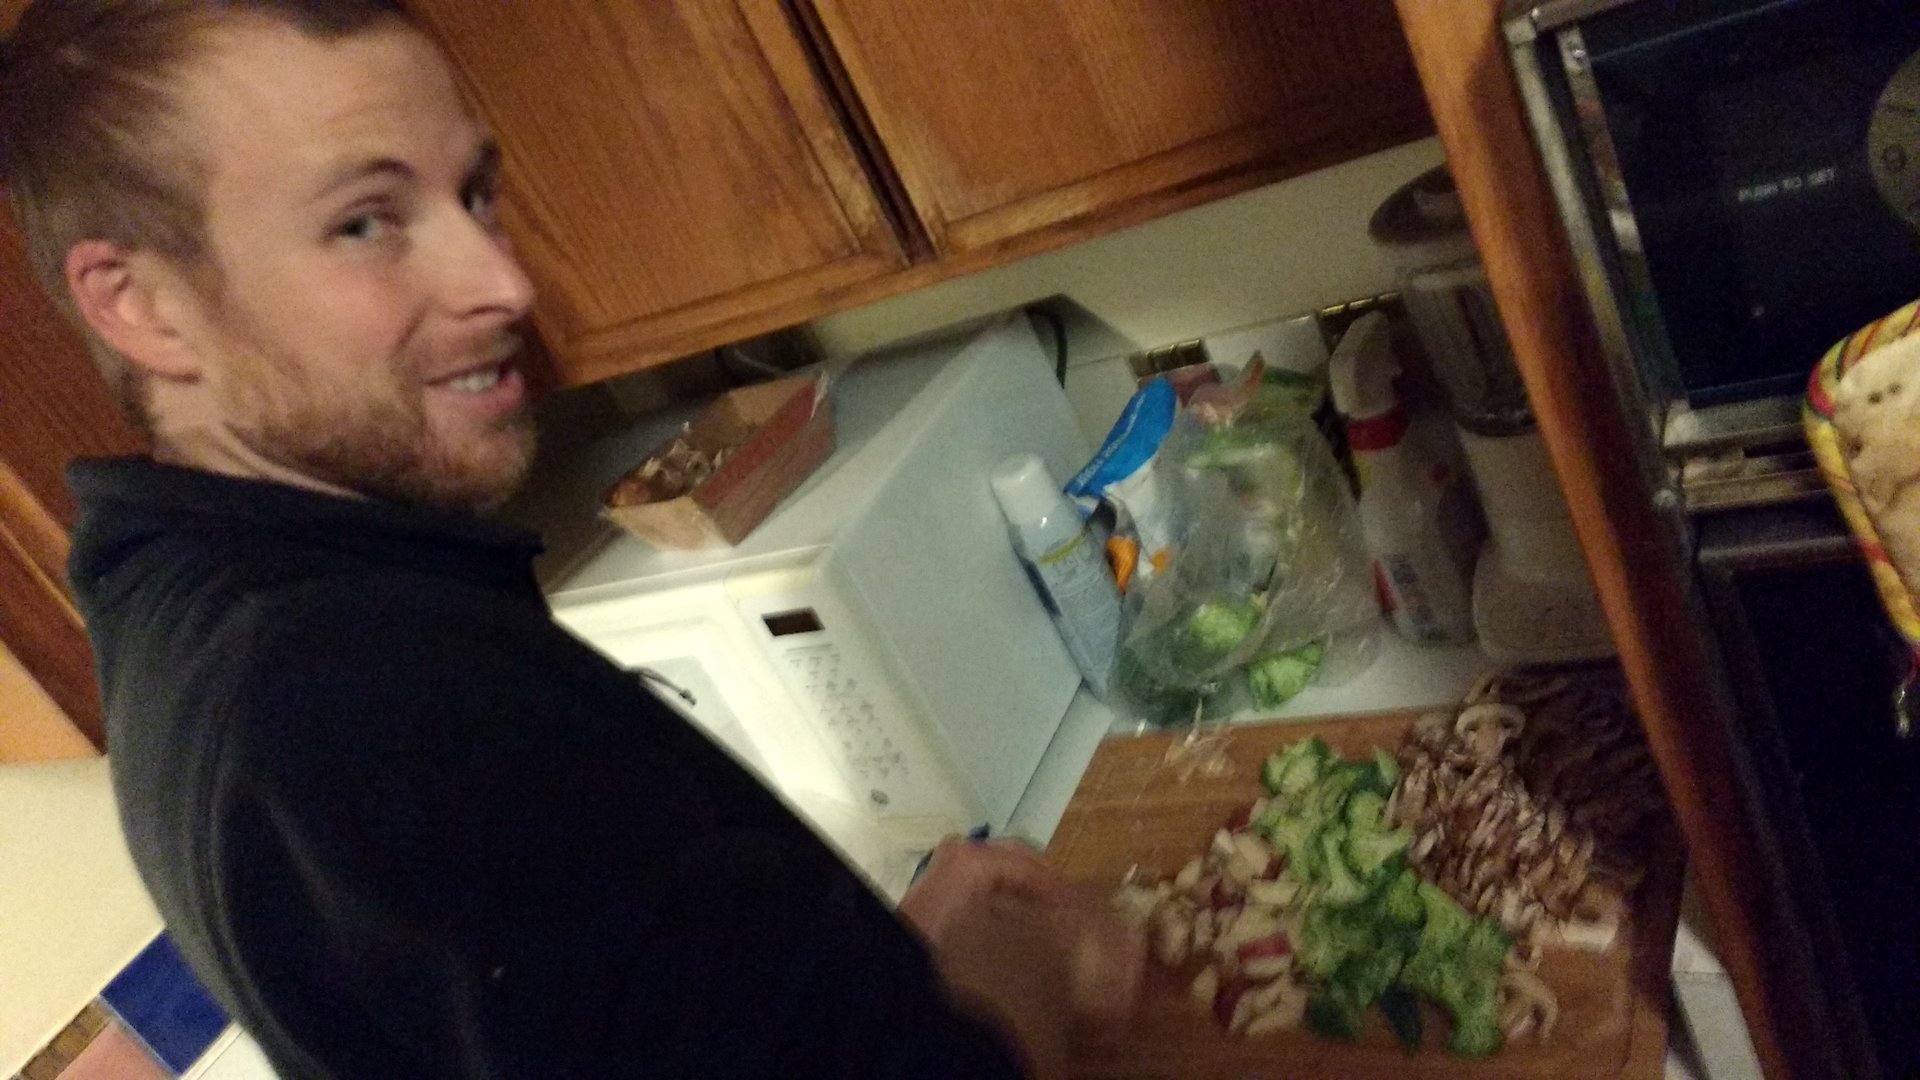 Mike chopping vegetables at a cutting board